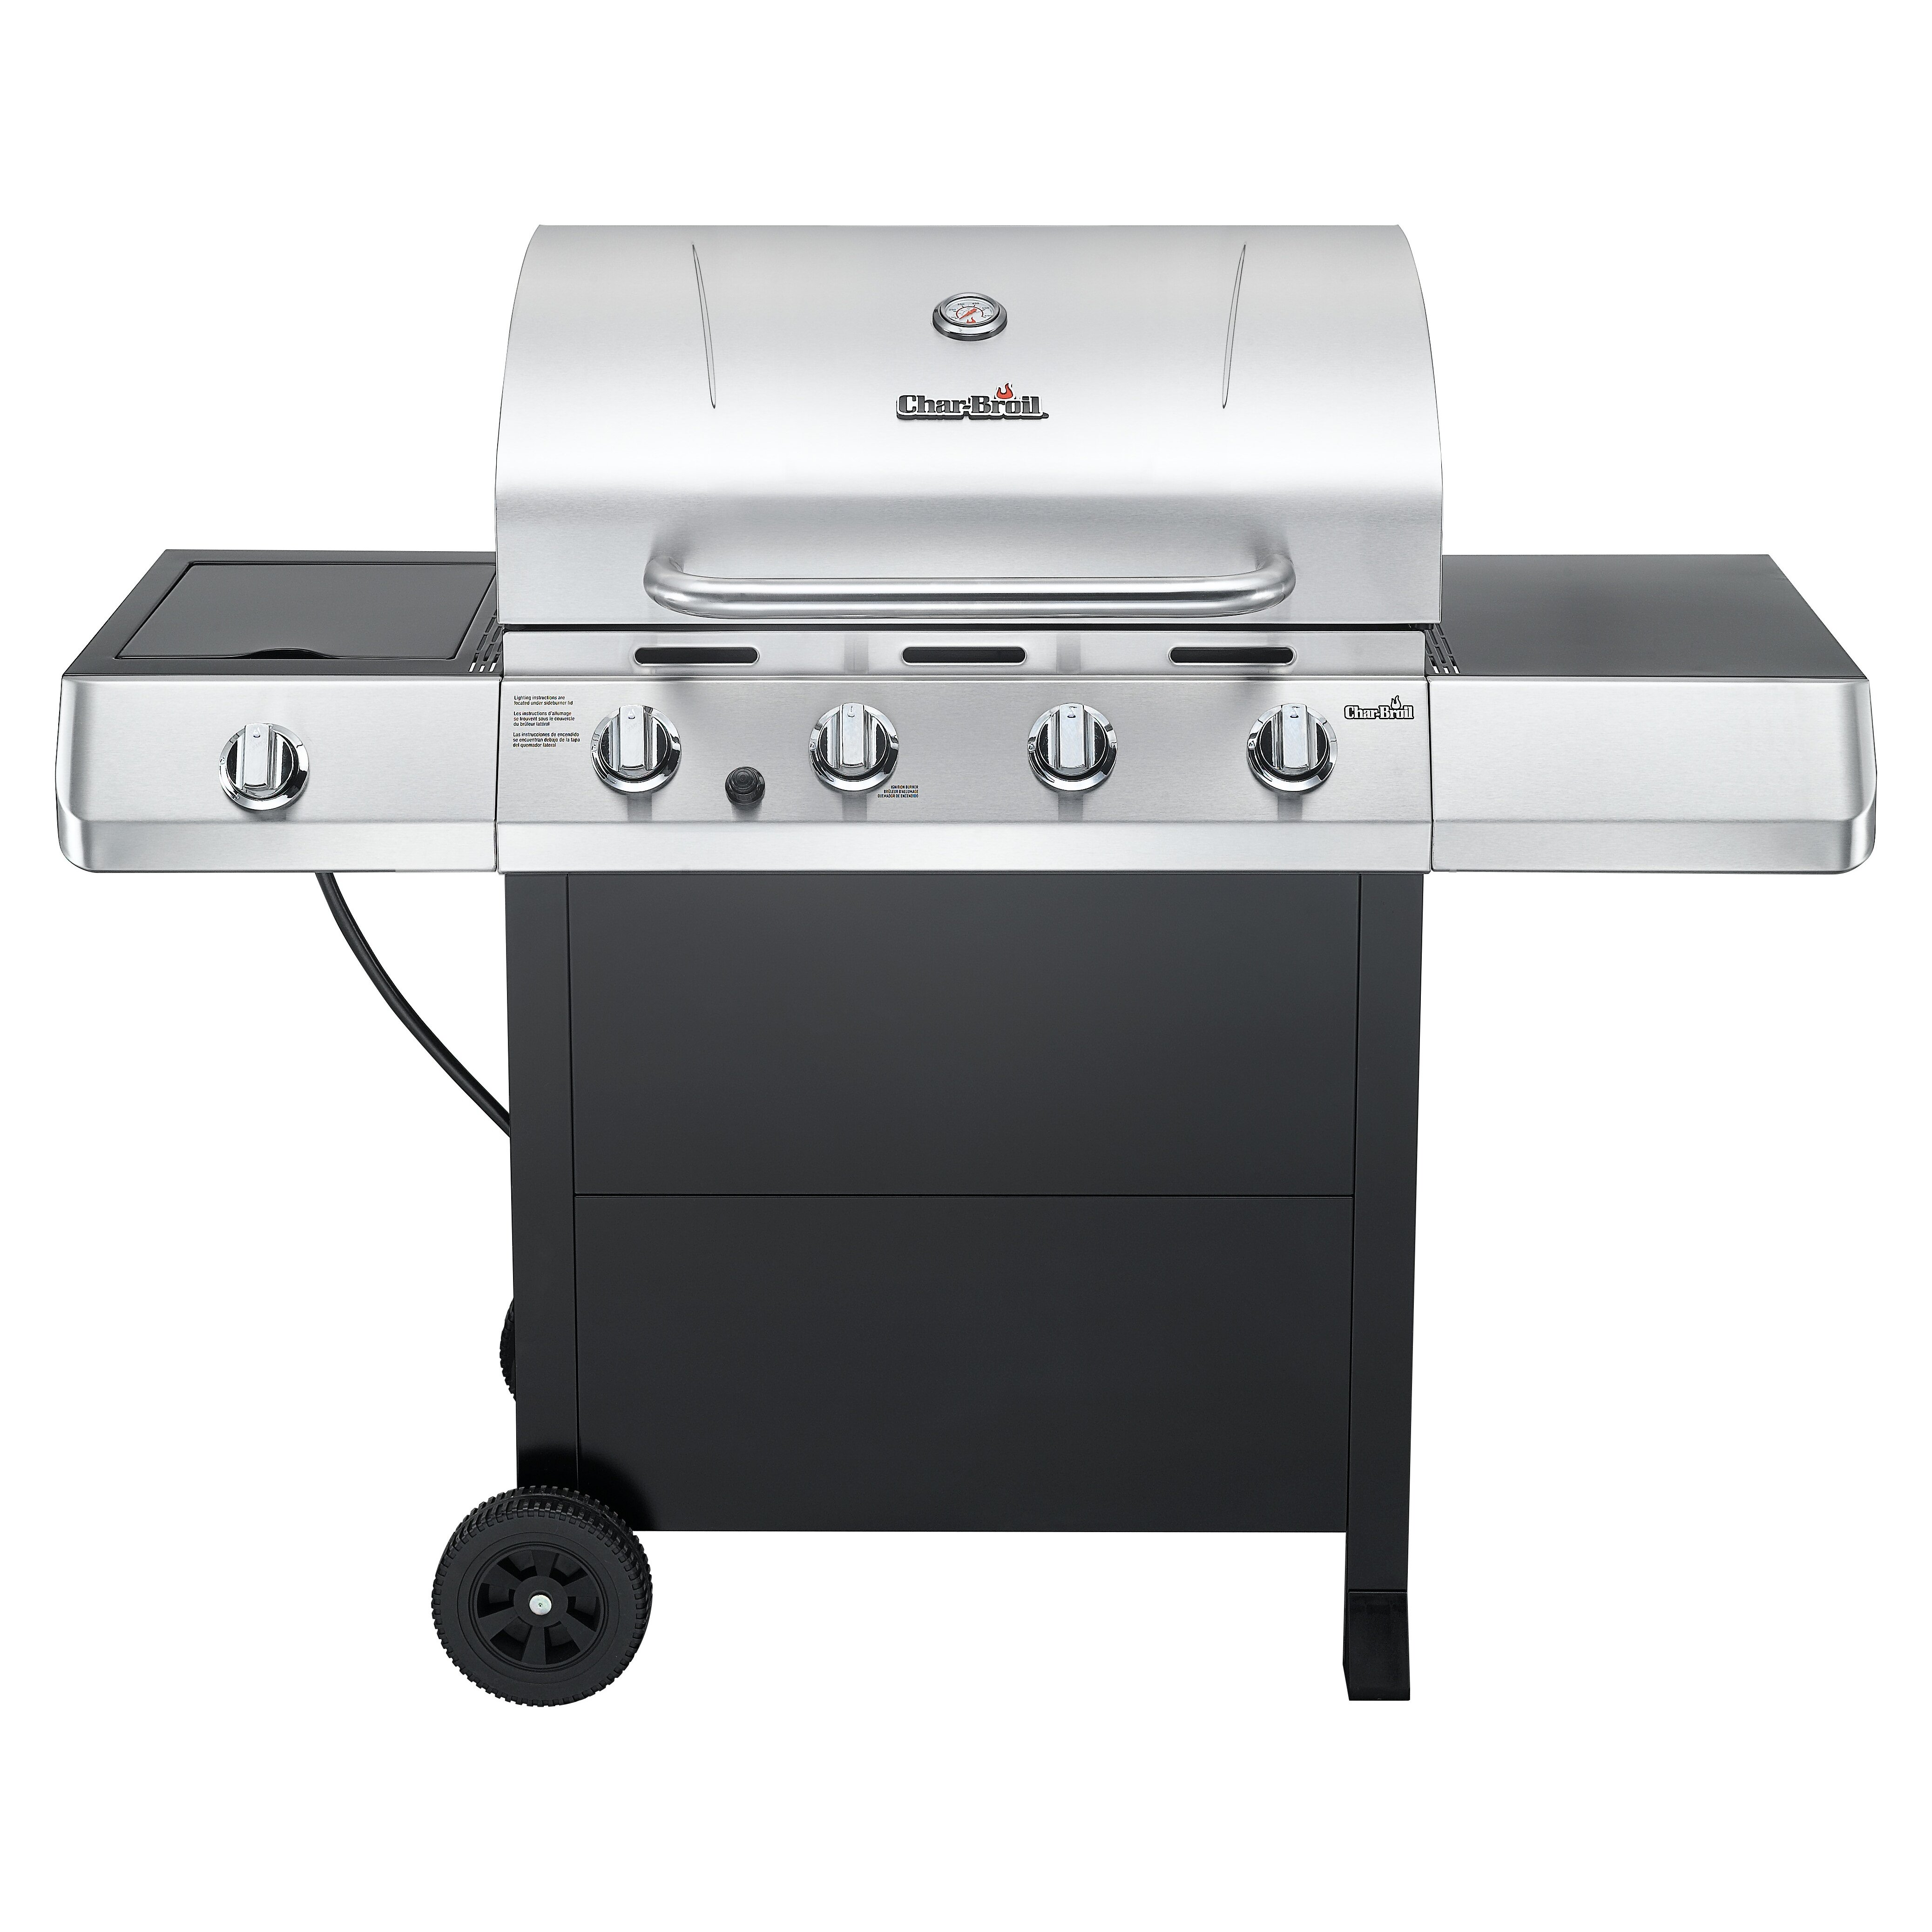 Sides On The Grill: CharBroil Classic 4 Burner Grill With Side Burner